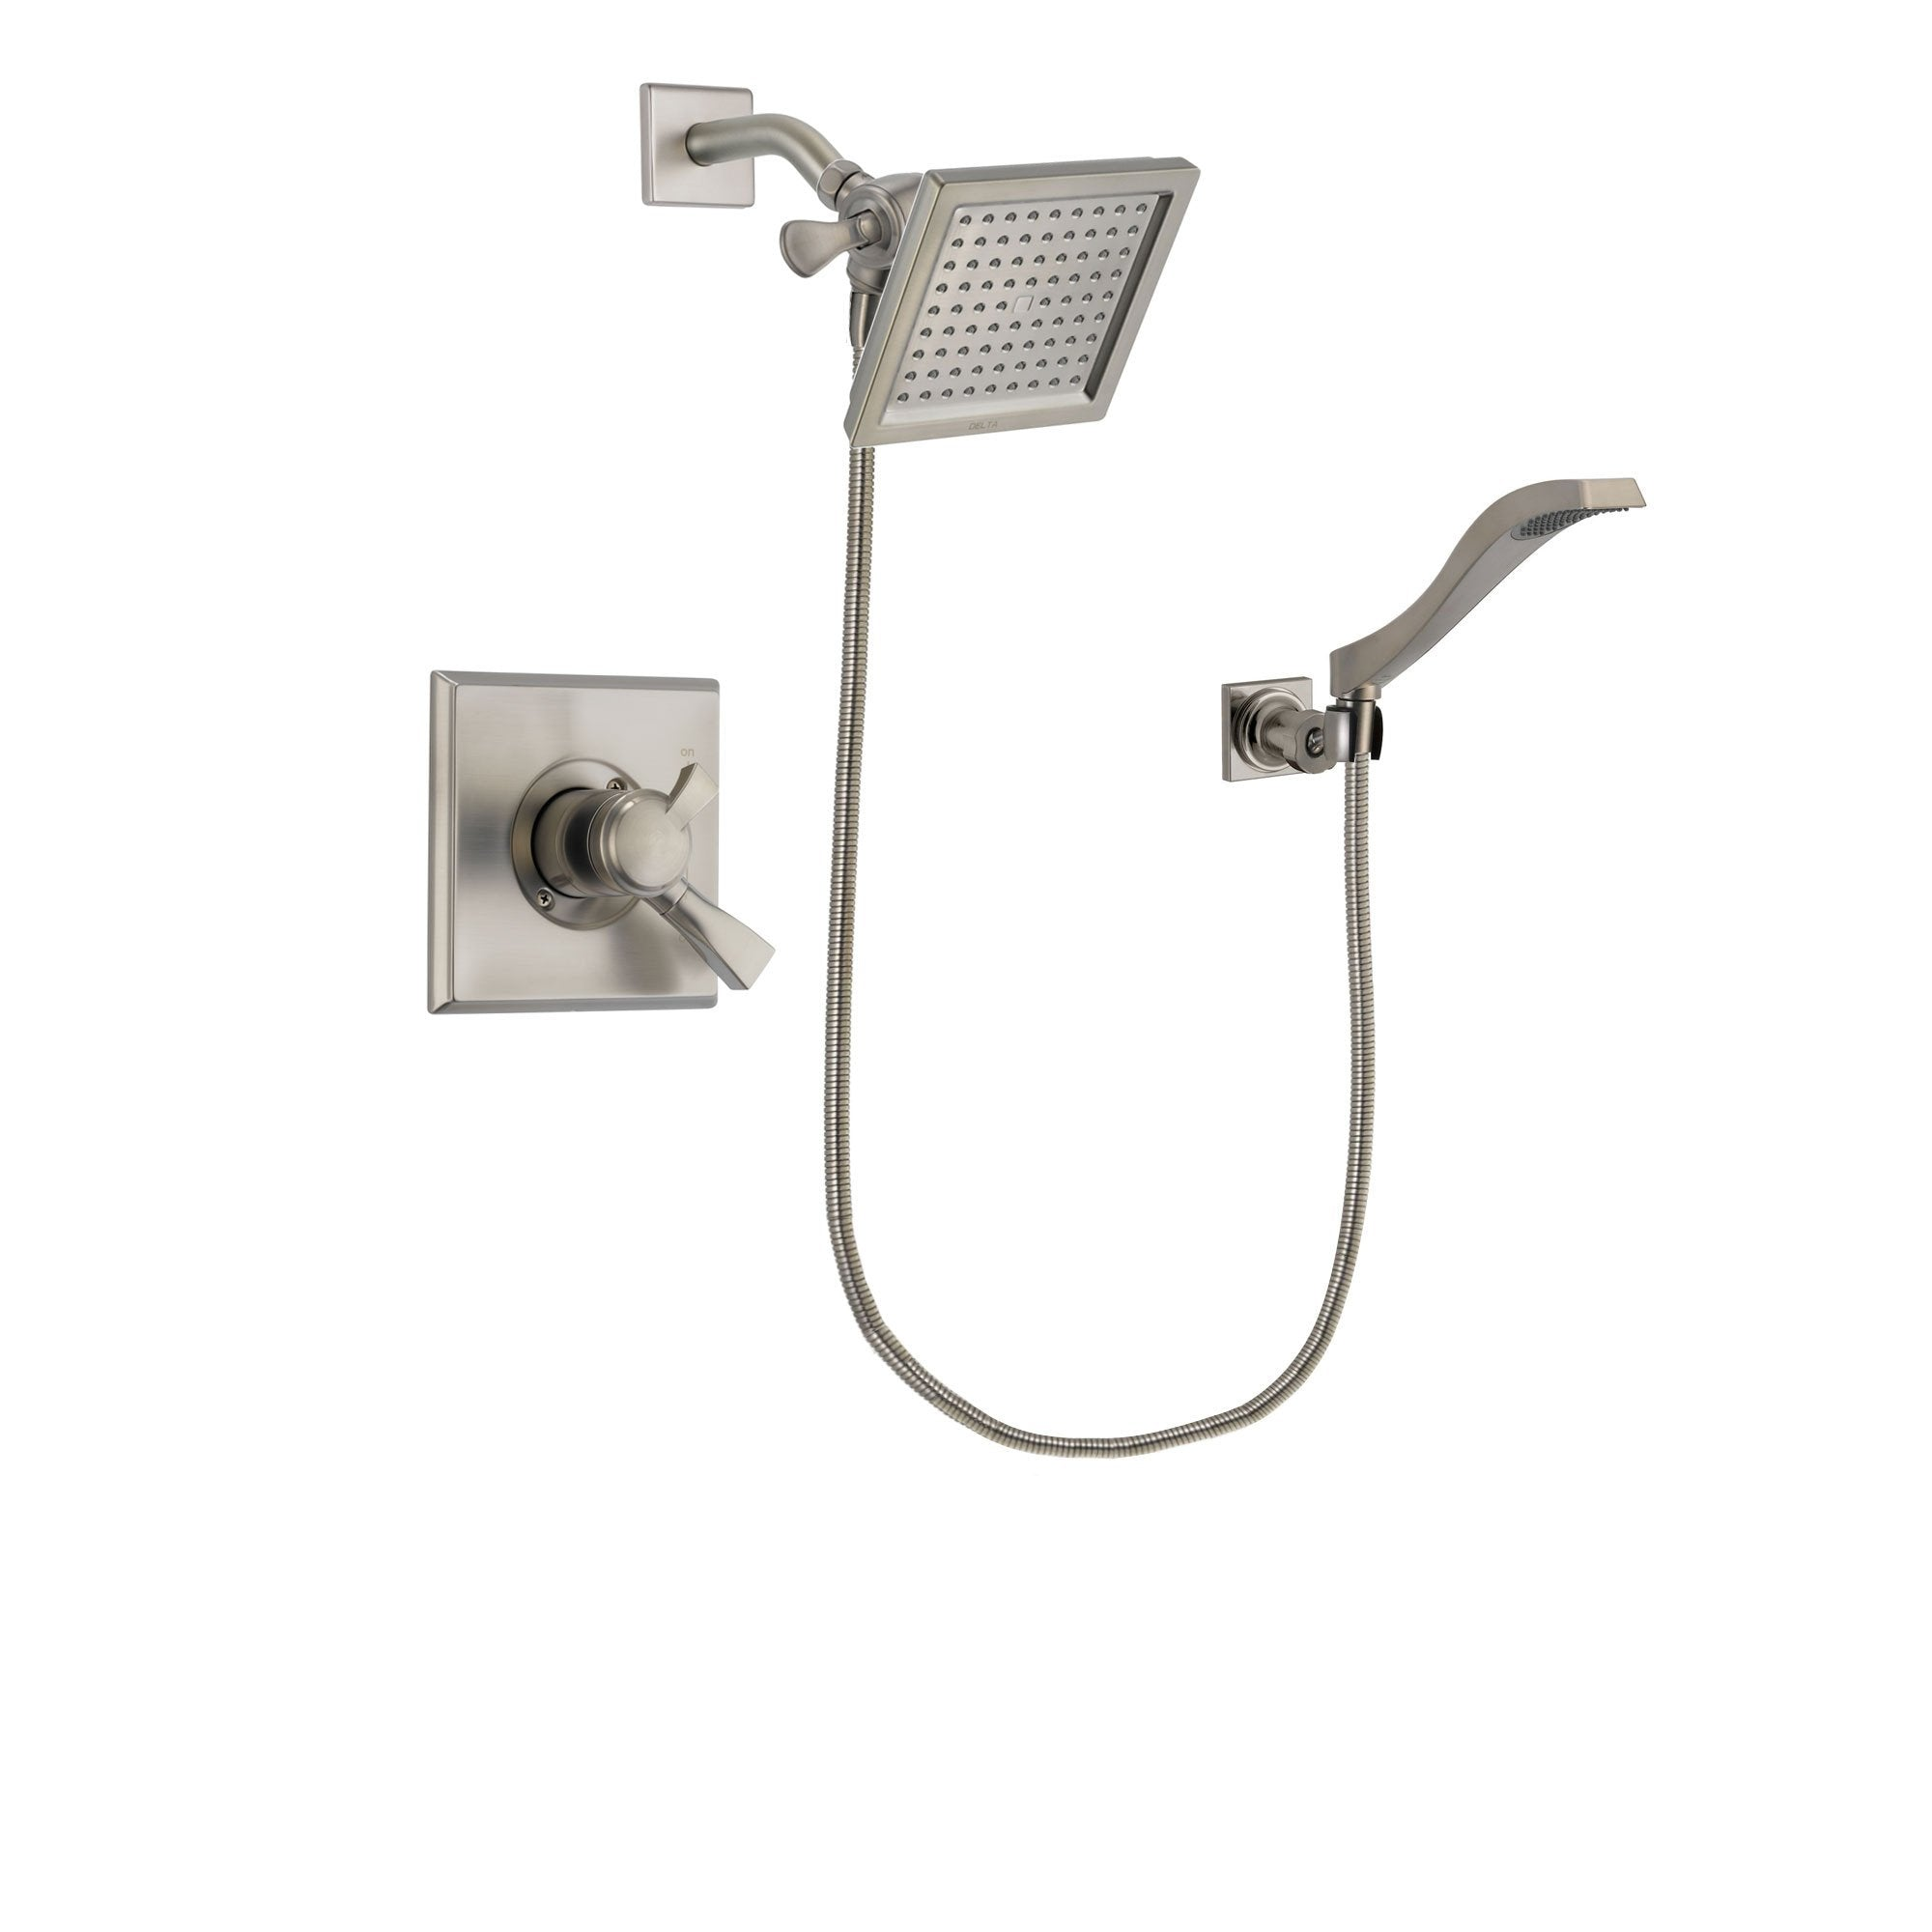 Delta Dryden Stainless Steel Finish Shower Faucet System w/ Hand Spray DSP2088V